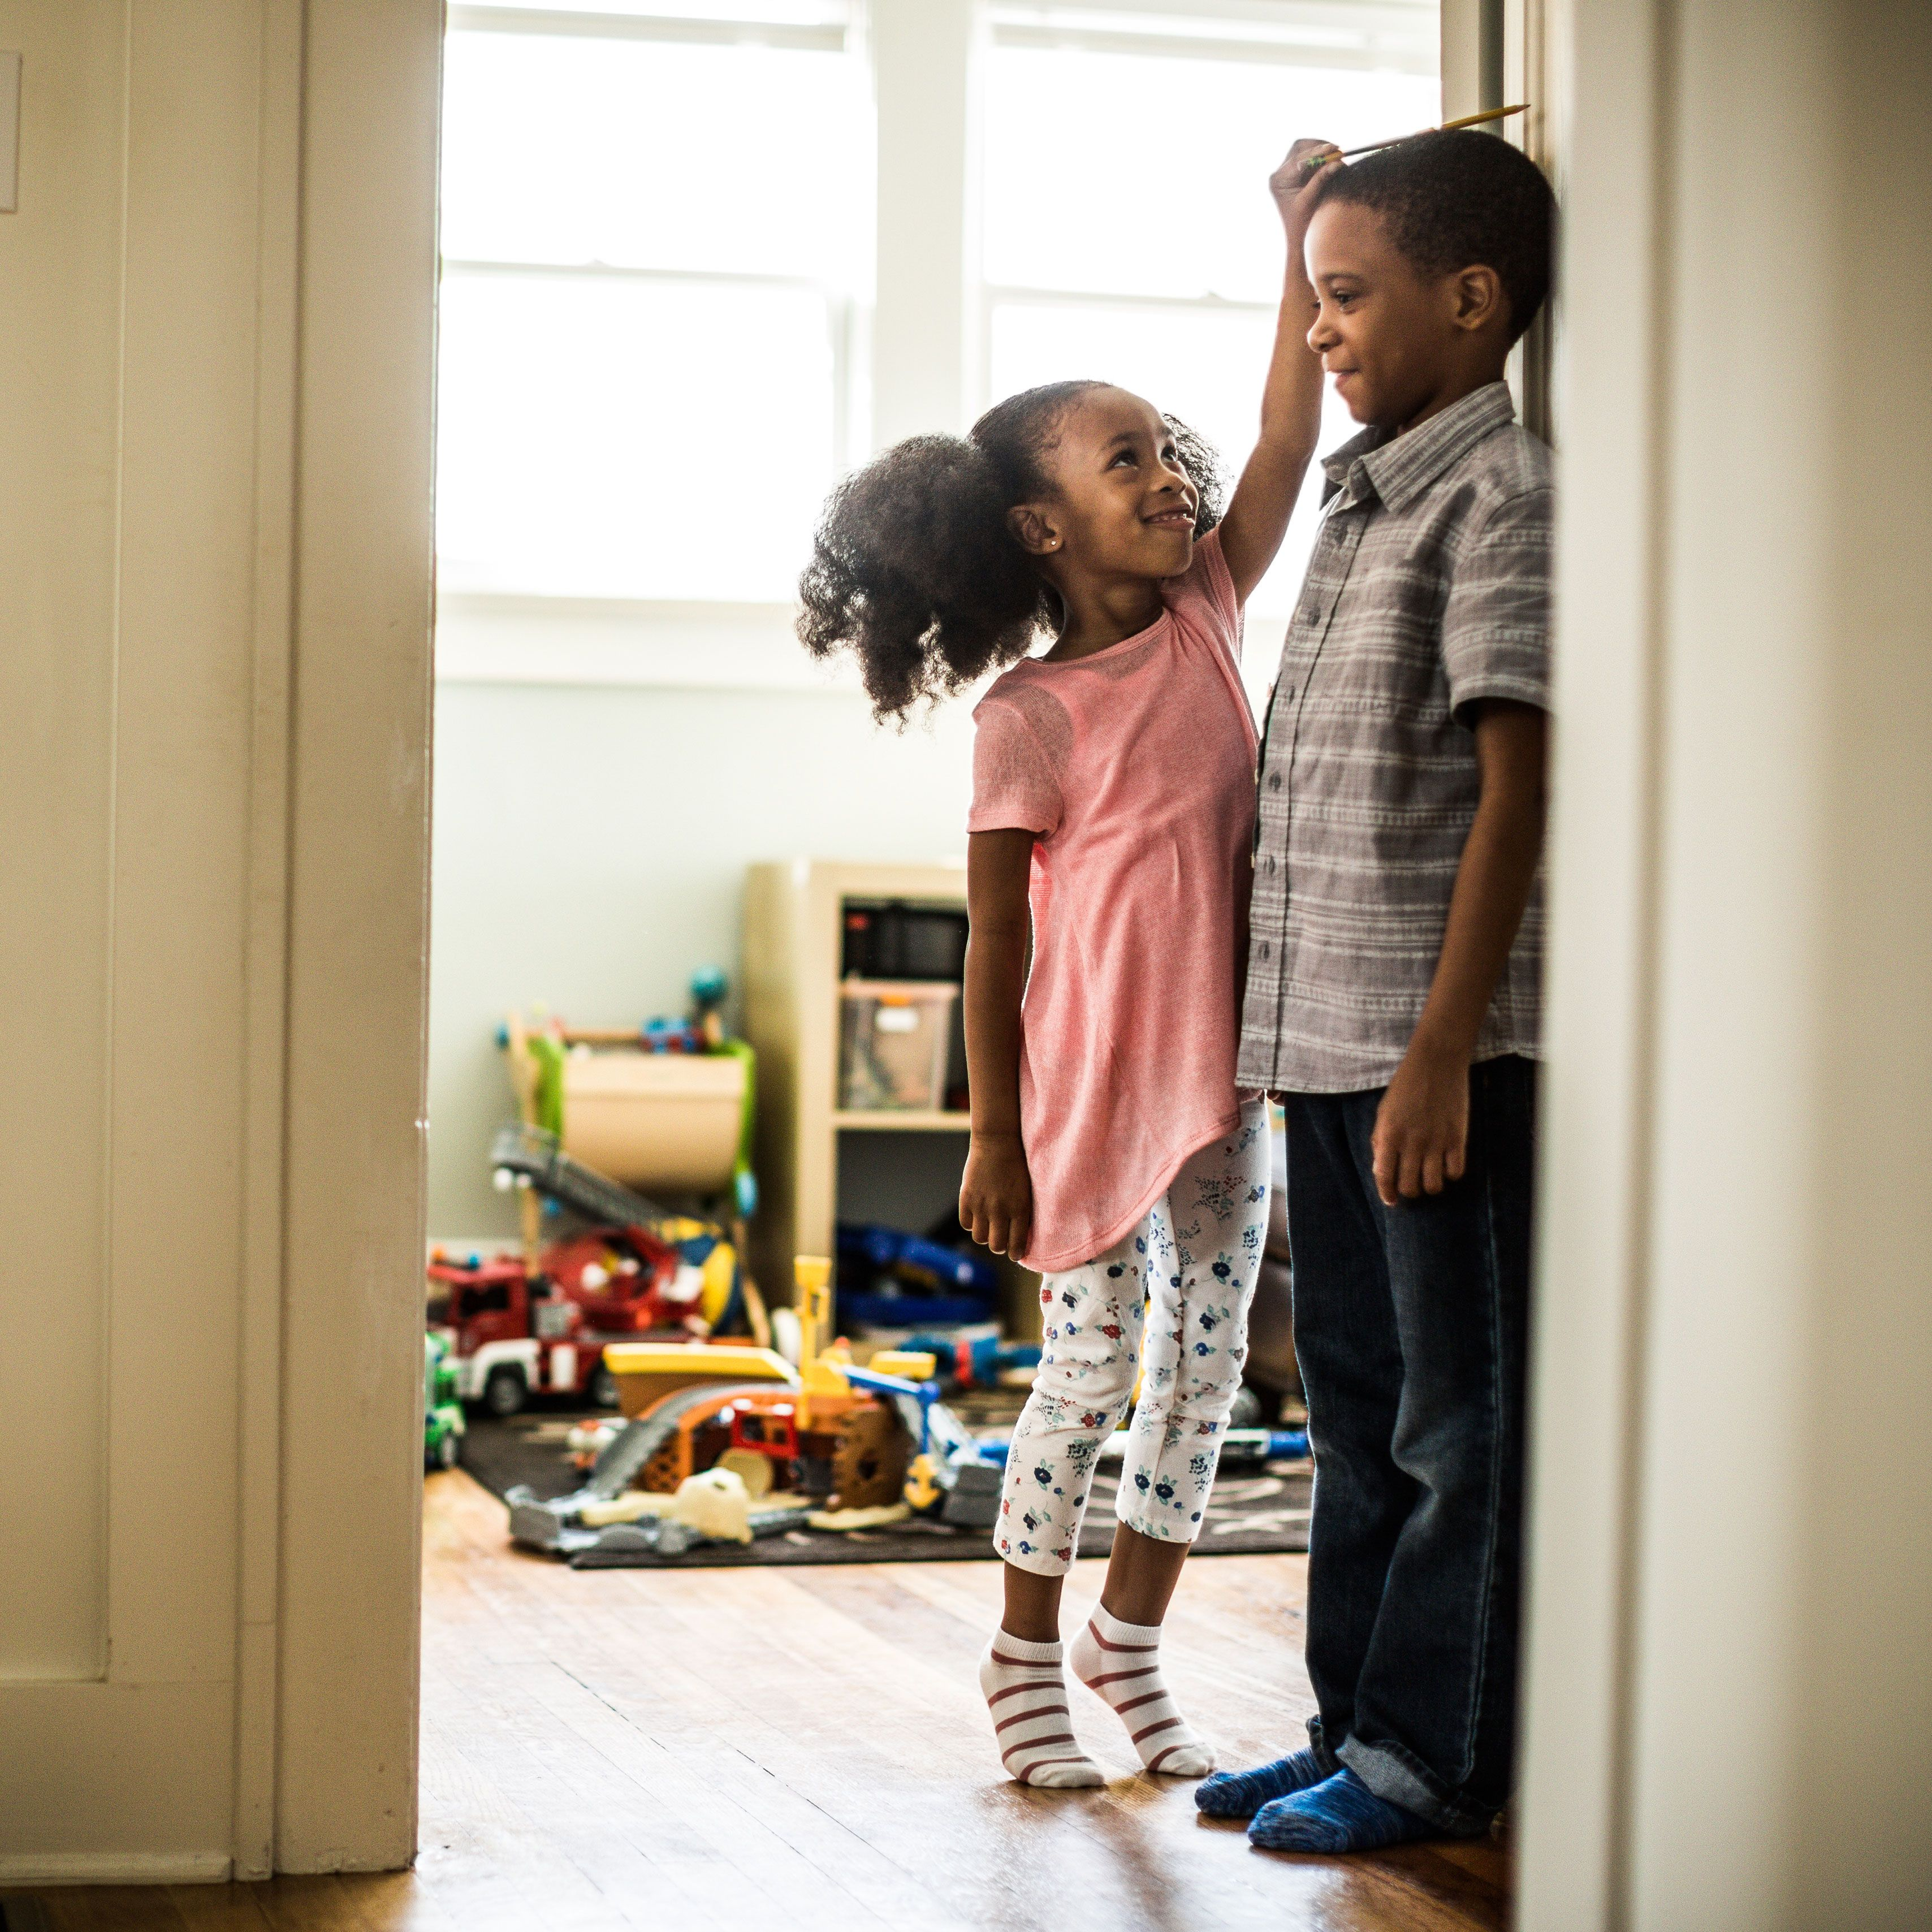 "<p>Children who feel loved and important in their own right are less likely to feel competitive with or jealous of a sibling, says <a href=""http://california.providence.org/saint-johns/find-a-doctor/m/mendez-mayra/"" data-tracking-id=""recirc-text-link"" target=""_blank"">Mayra Mendez</a>, Ph.D., a licensed psychotherapist at Providence Saint John's Child and Family Development Center in Santa Monica, California. You can encourage this by praising children for their unique achievements — not in comparison to one another, but simply to acknowledge what makes each one great. ""No child is better than or less than the other, they're unique,"" she says.<br></p><p><strong data-verified=""redactor"" data-redactor-tag=""strong"">RELATED: <a href=""http://www.redbookmag.com/life/mom-kids/advice/g3649/things-you-should-never-say-to-children/"" target=""_blank"" data-tracking-id=""recirc-text-link"">50 Things You Should Never, Ever Say to Your Kids</a><span class=""redactor-invisible-space"" data-verified=""redactor"" data-redactor-tag=""span"" data-redactor-class=""redactor-invisible-space""><a href=""http://www.redbookmag.com/life/mom-kids/advice/g3649/things-you-should-never-say-to-children/""></a></span></strong><br></p>"